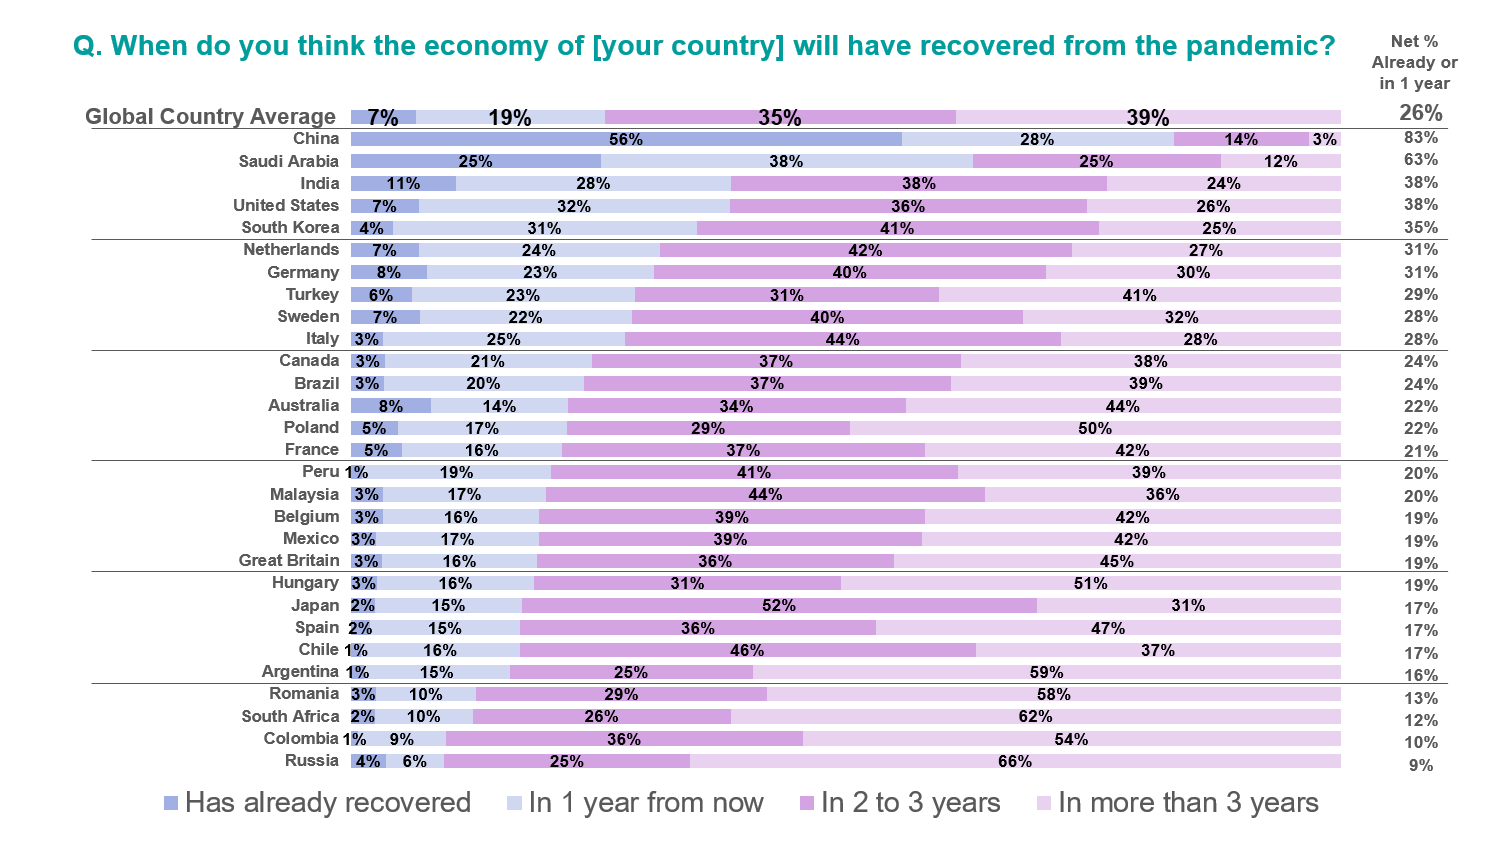 this chart shows when people across different countries think their country will recover from the pandemic